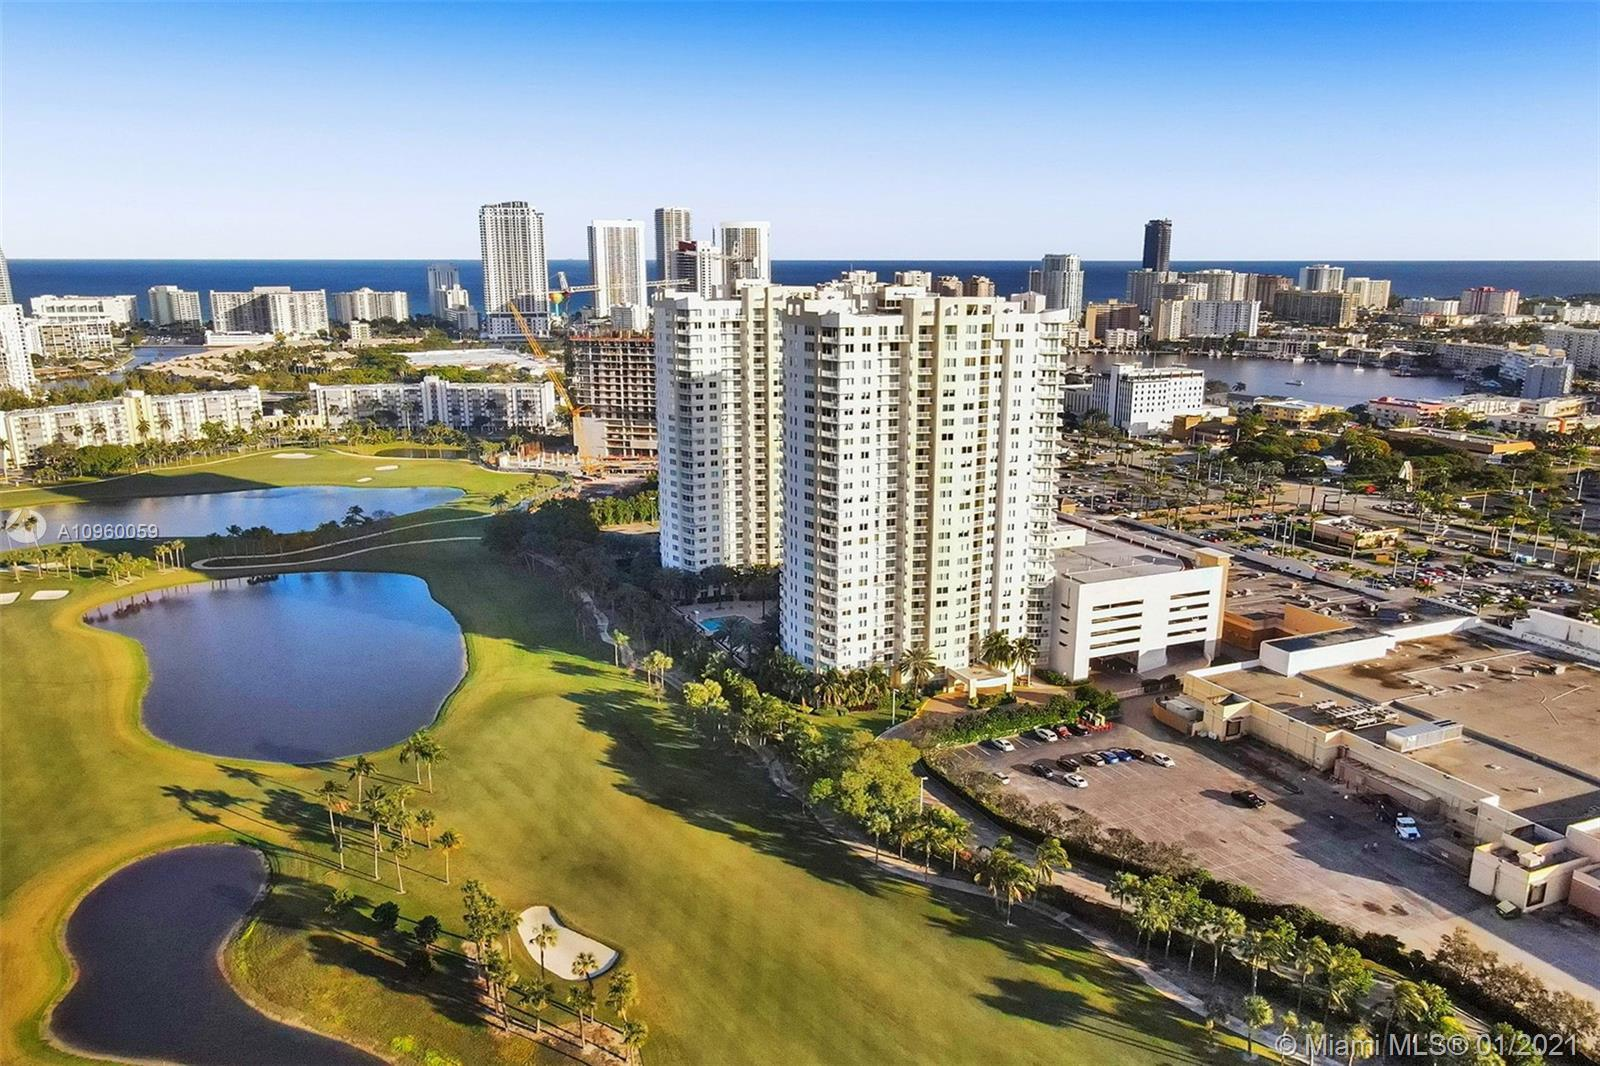 """LOCATION, VIEW """" GOLF, TENNIS , BAY AND CITY """" IN THIS EXCELLENT UNIT WITH 2 BEDROOMS + 2 BATHROOMS"""